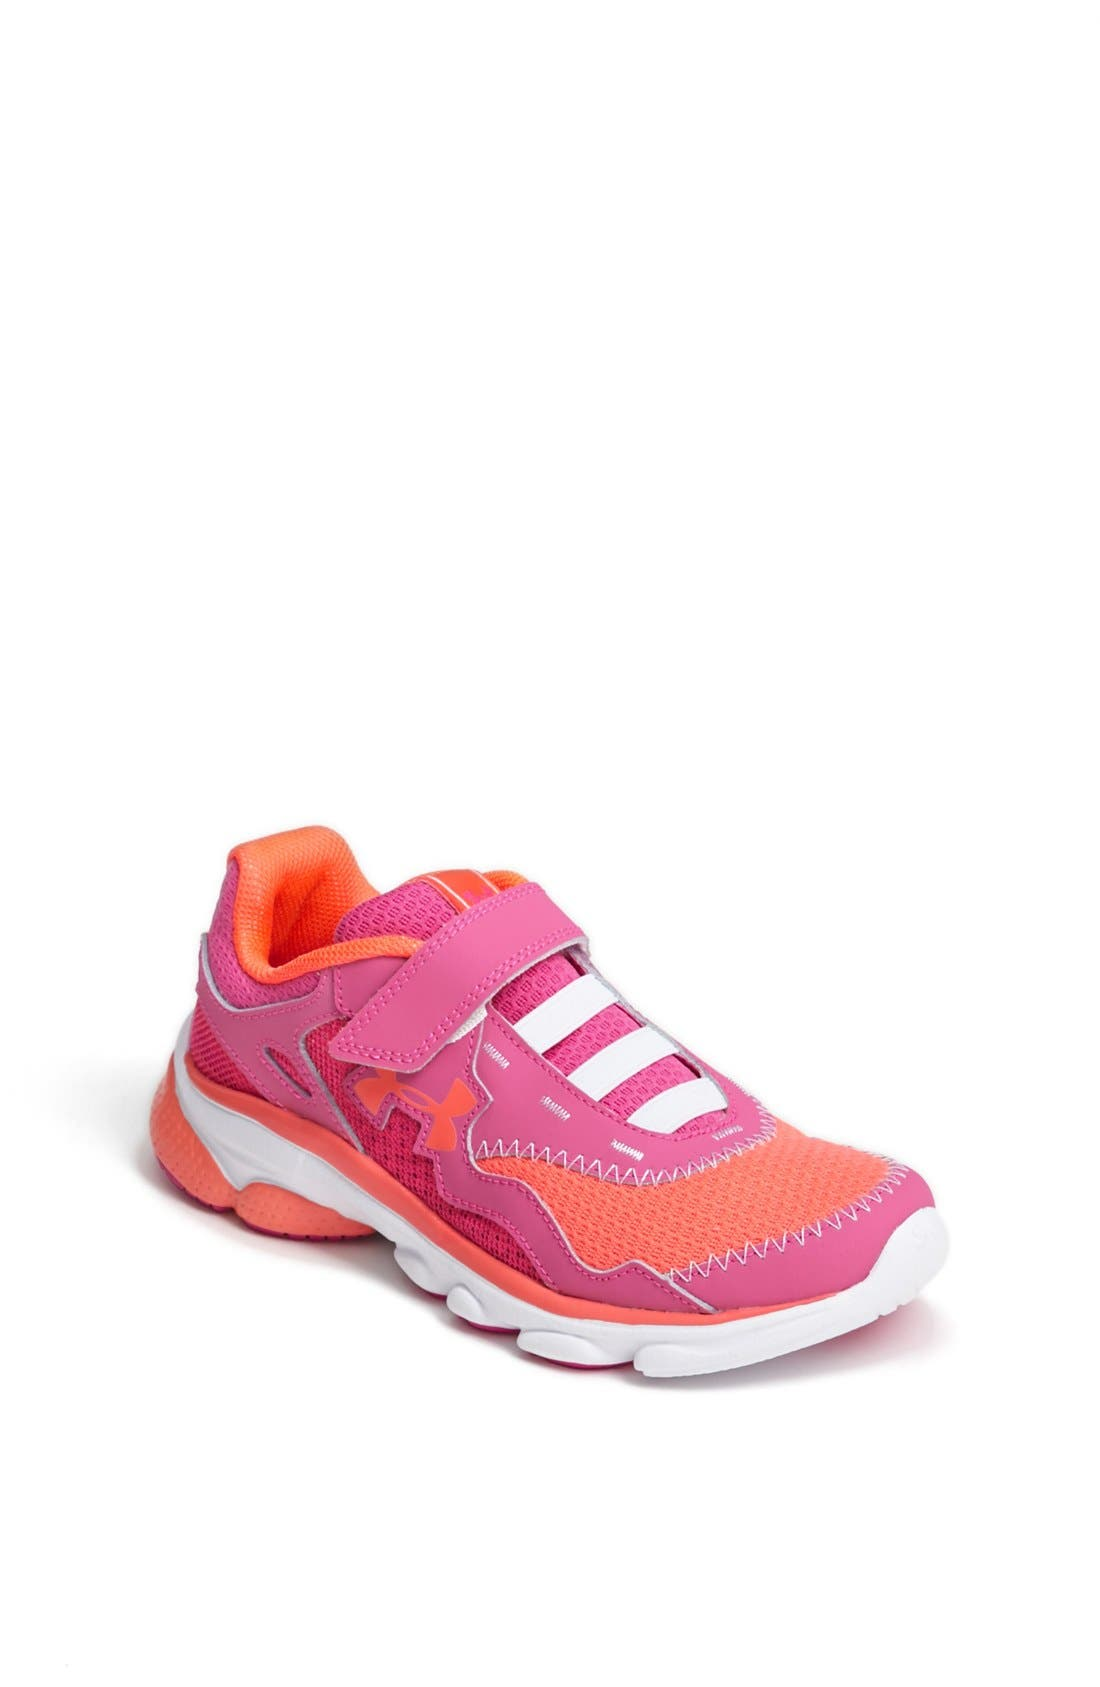 Alternate Image 1 Selected - Under Armour 'Assert III' Athletic Shoe (Baby, Walker, Toddler & Little Kid)